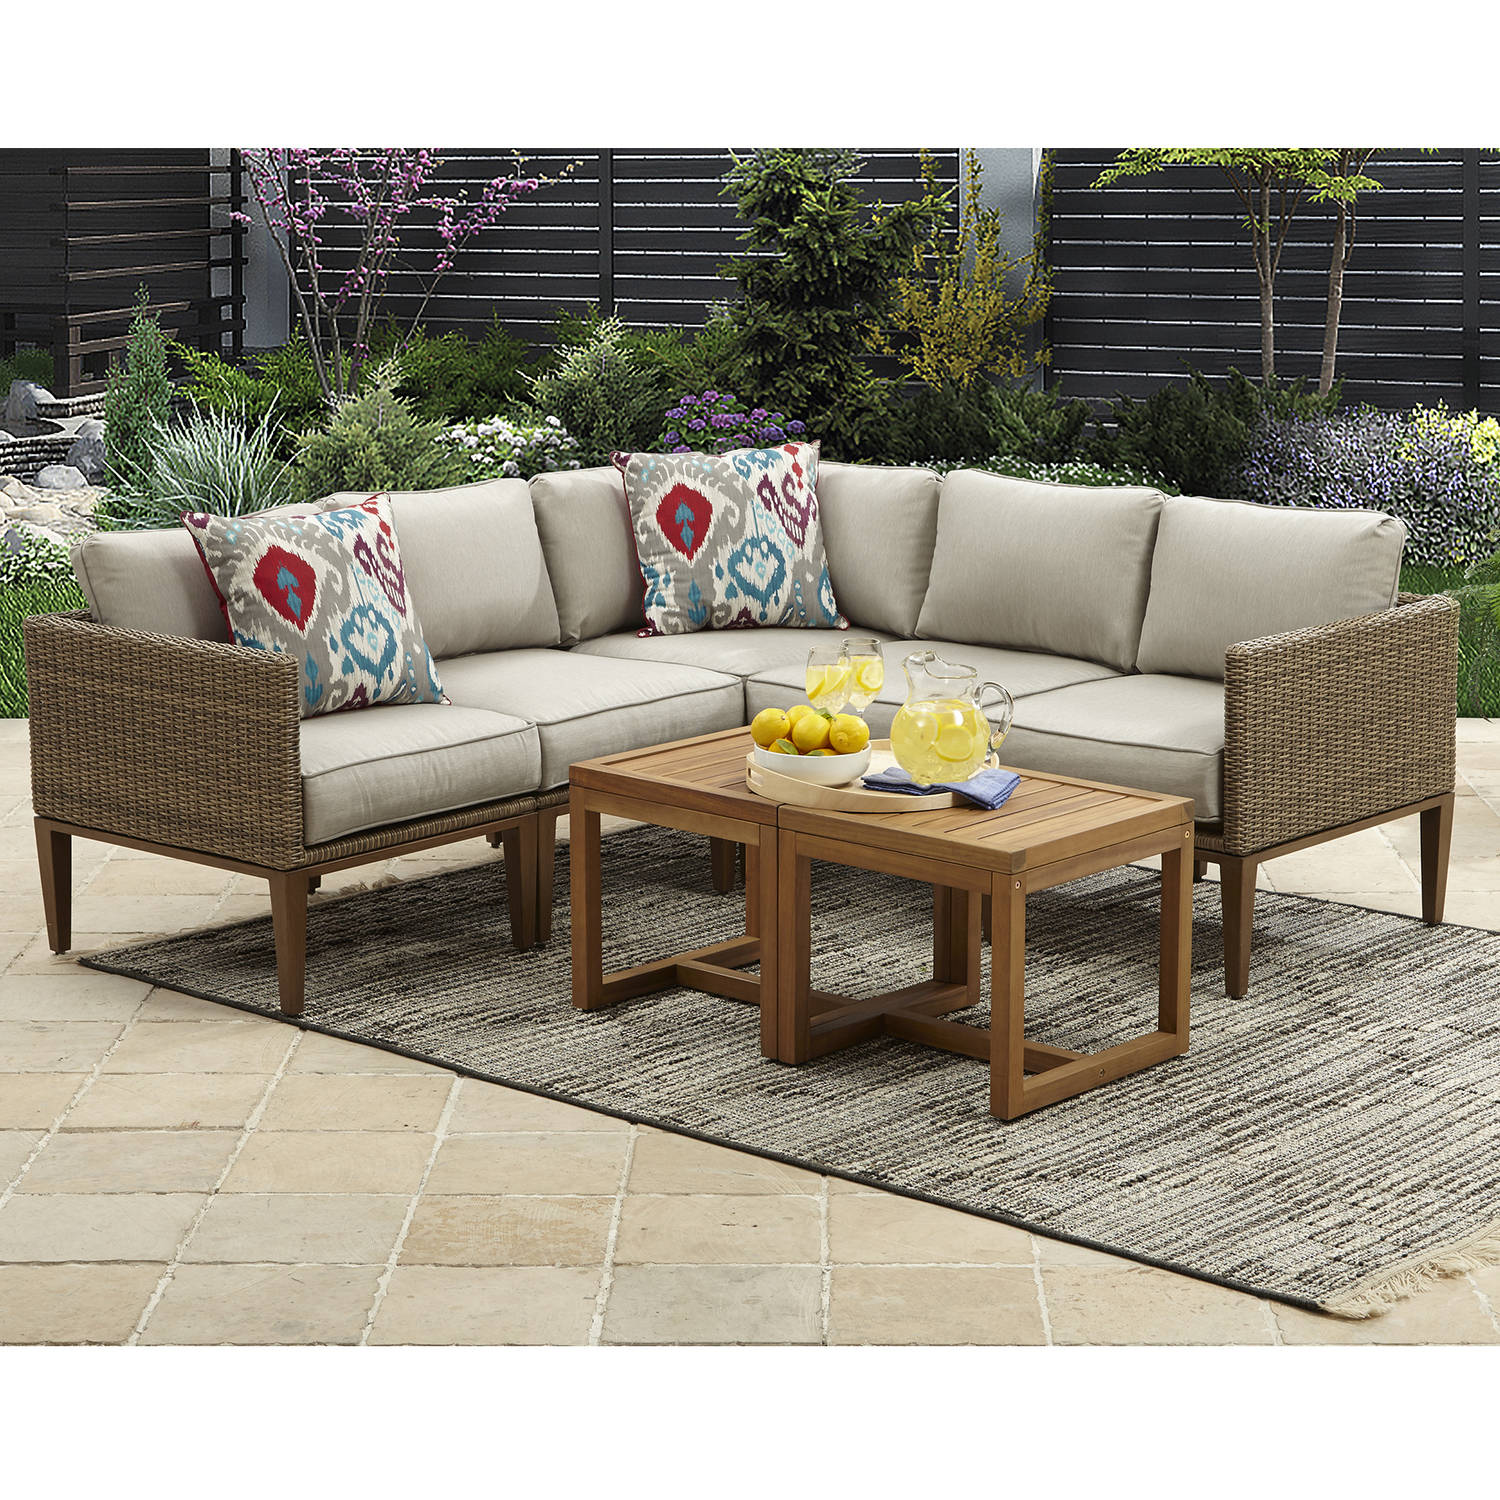 Better Homes and Gardens Davenport 7-Piece Woven Outdoor Sectional Set